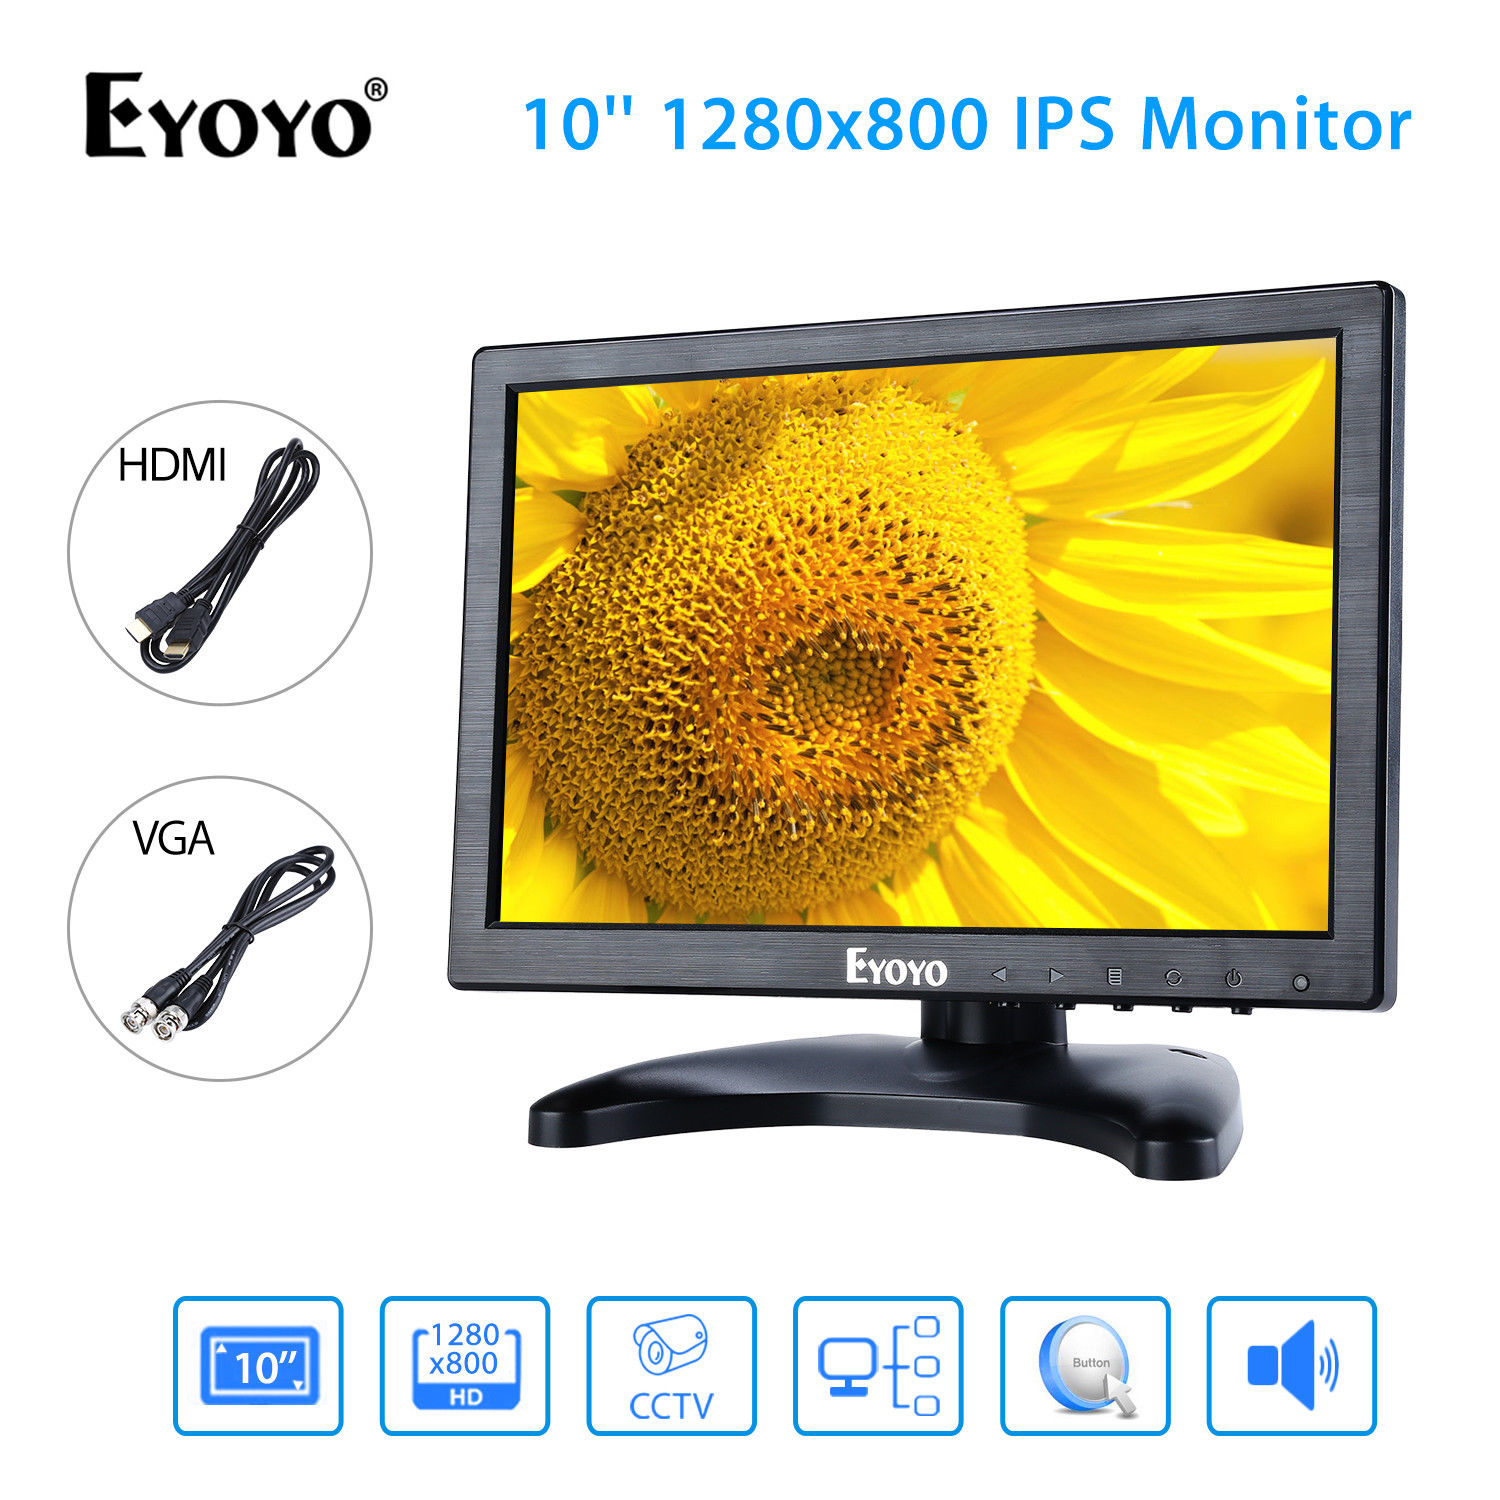 EYOYO H1016 IPS 10'' FHD Display 1280x800 VGA BNC USB Video Audio AV HDMI Monitor Black For CCTV DVD PC Laptop DVR CCD Camera цена